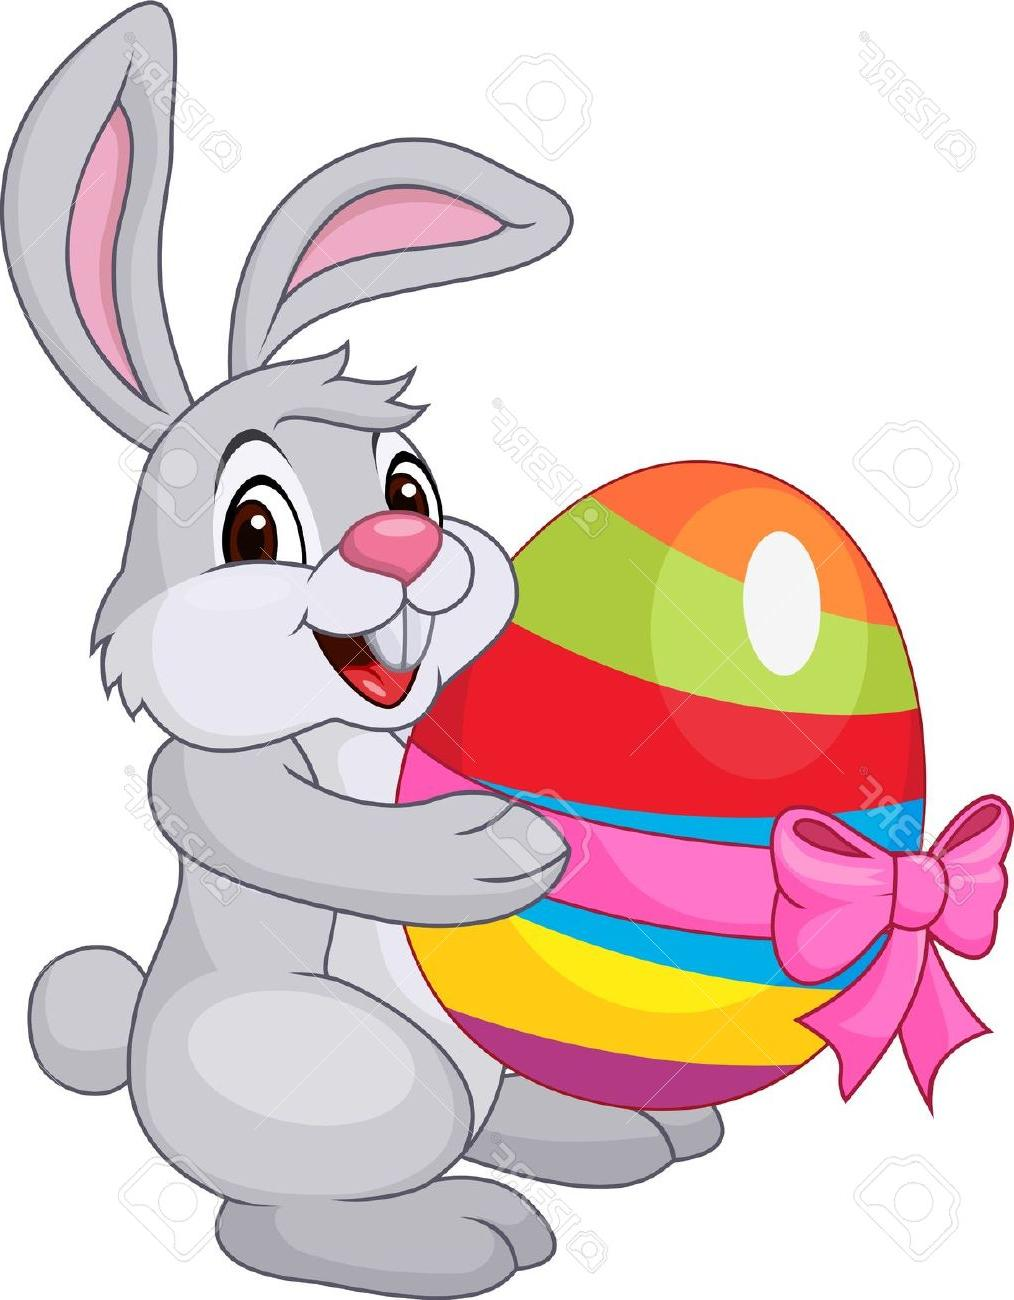 1014x1300 Noted Easter Bunny Cartoon Pictures Jumping With Egg Basket Vector